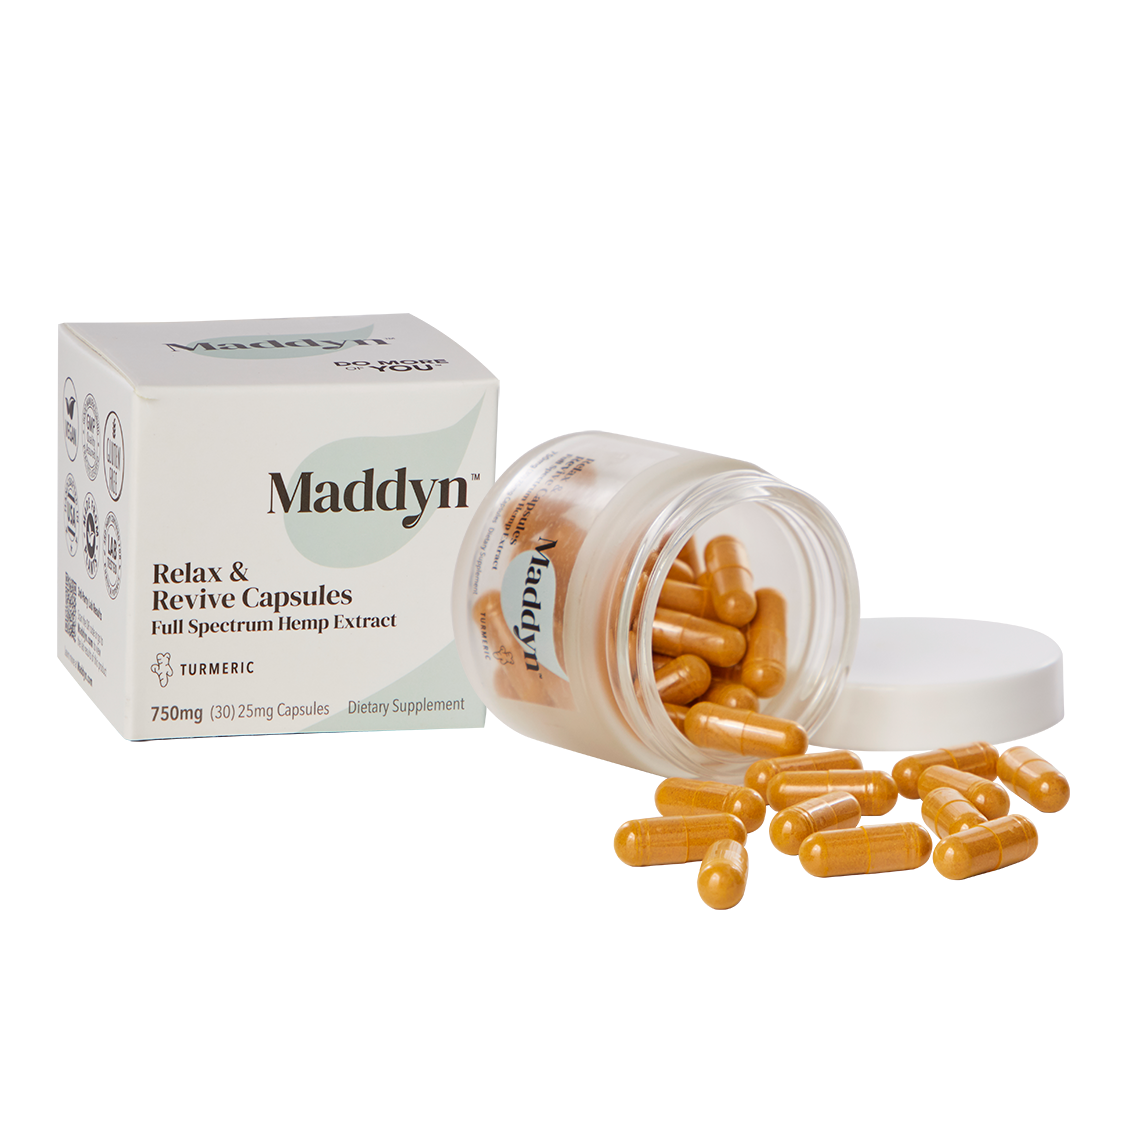 Maddyn Relax & Revitalize full spectrum hemp extract CBD capsules